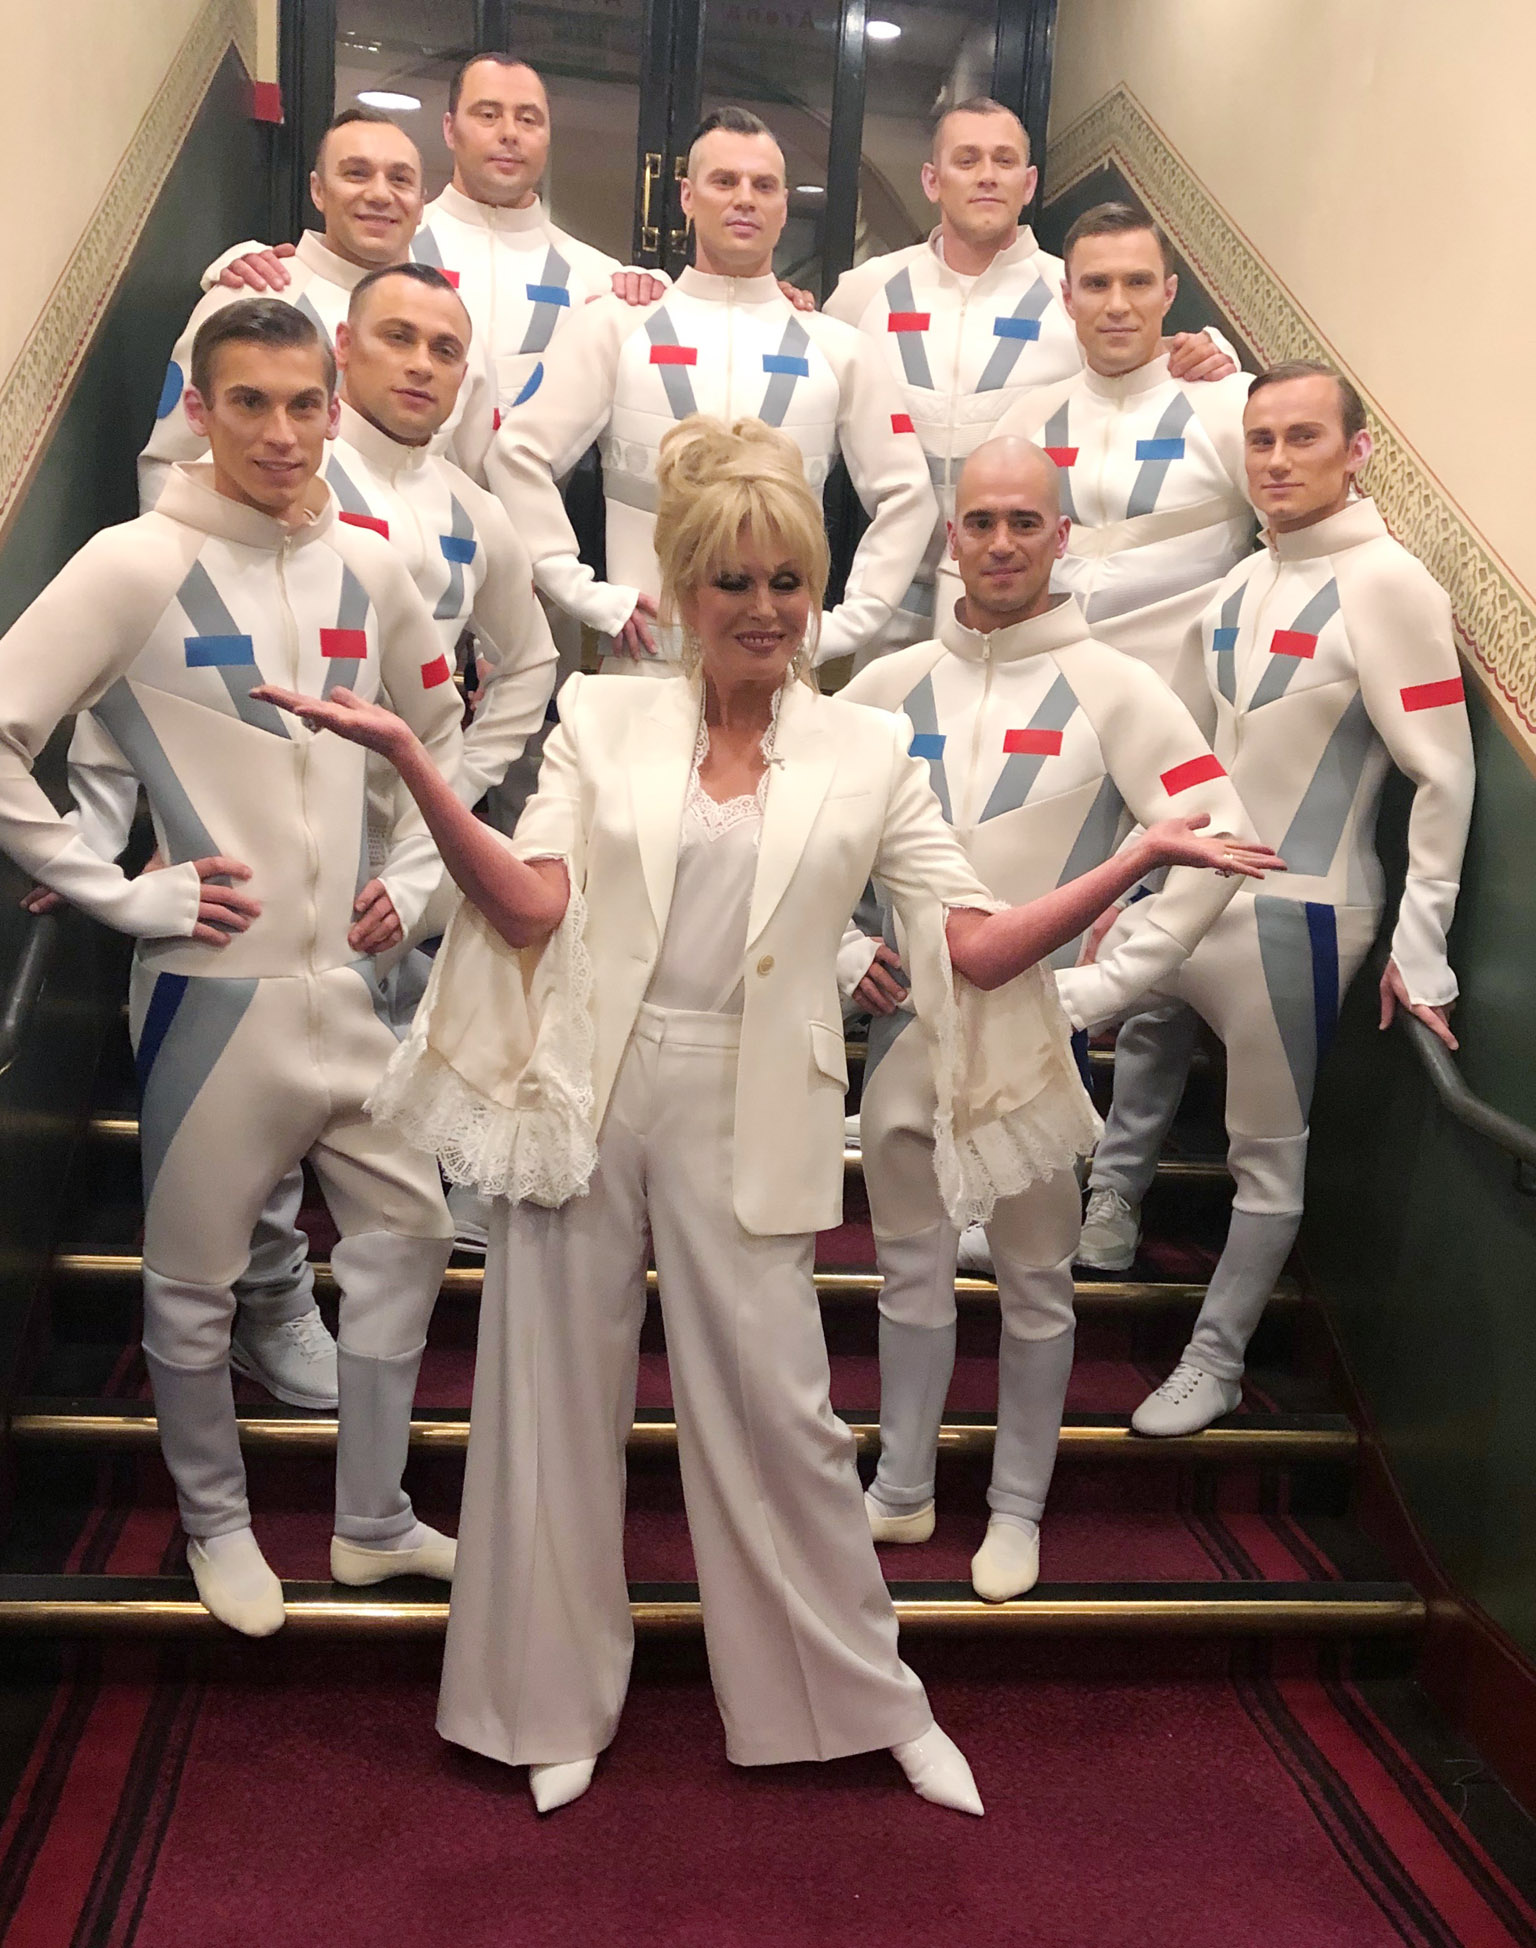 Joanna Lumley & Cirque du Soleil backstage at the Royal Albert Hall. Pic: Zoe Stevens